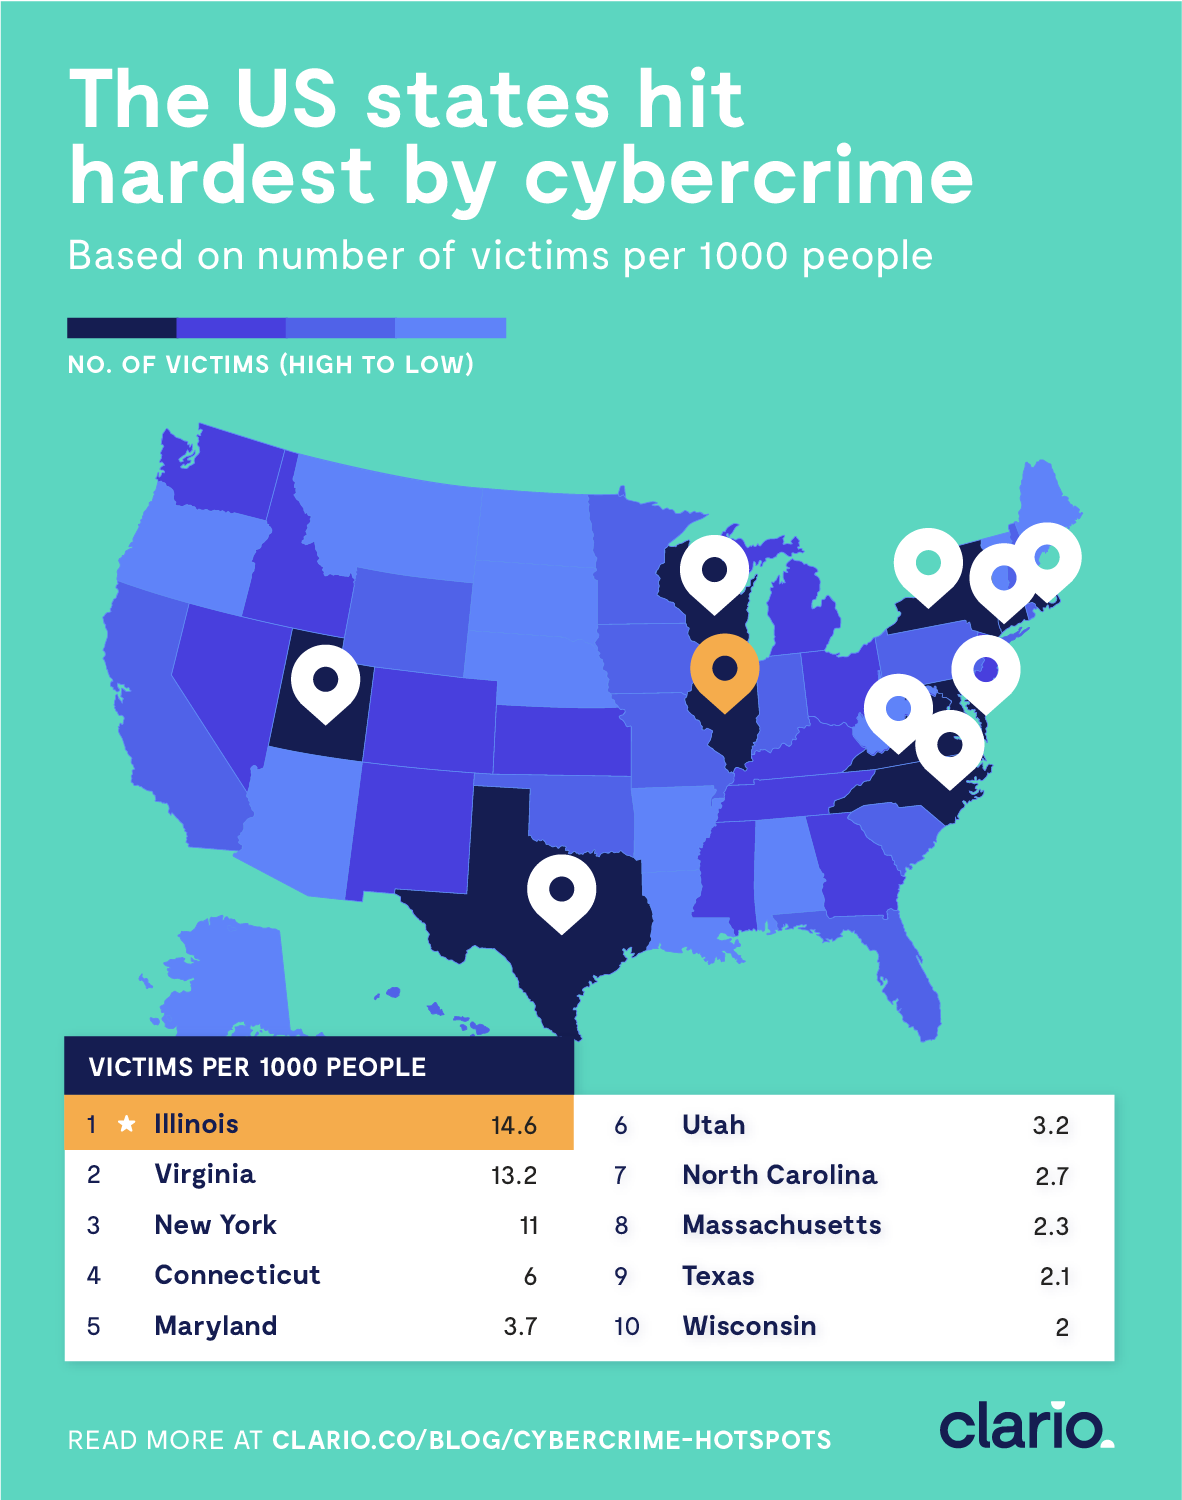 the US states hit hardest by cybercrime